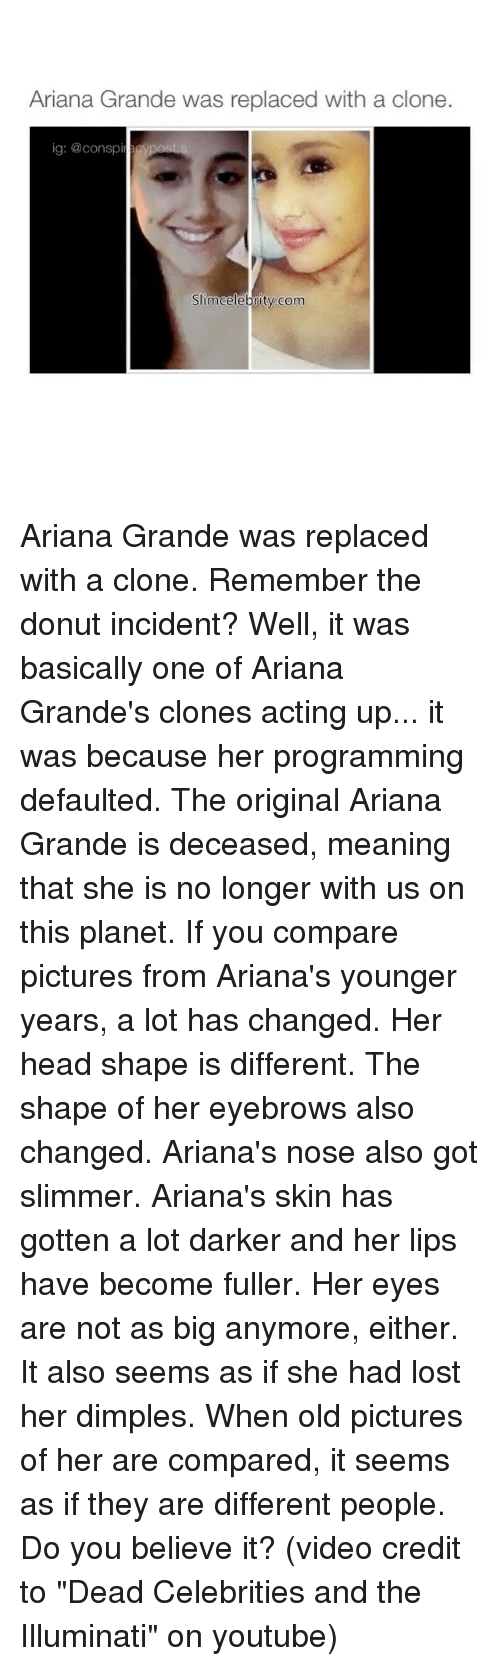 "dead celebrities: Ariana Grande was replaced with a clone.  ig: @conspir  SimCelebrity com Ariana Grande was replaced with a clone. Remember the donut incident? Well, it was basically one of Ariana Grande's clones acting up... it was because her programming defaulted. The original Ariana Grande is deceased, meaning that she is no longer with us on this planet. If you compare pictures from Ariana's younger years, a lot has changed. Her head shape is different. The shape of her eyebrows also changed. Ariana's nose also got slimmer. Ariana's skin has gotten a lot darker and her lips have become fuller. Her eyes are not as big anymore, either. It also seems as if she had lost her dimples. When old pictures of her are compared, it seems as if they are different people. Do you believe it? (video credit to ""Dead Celebrities and the Illuminati"" on youtube)"